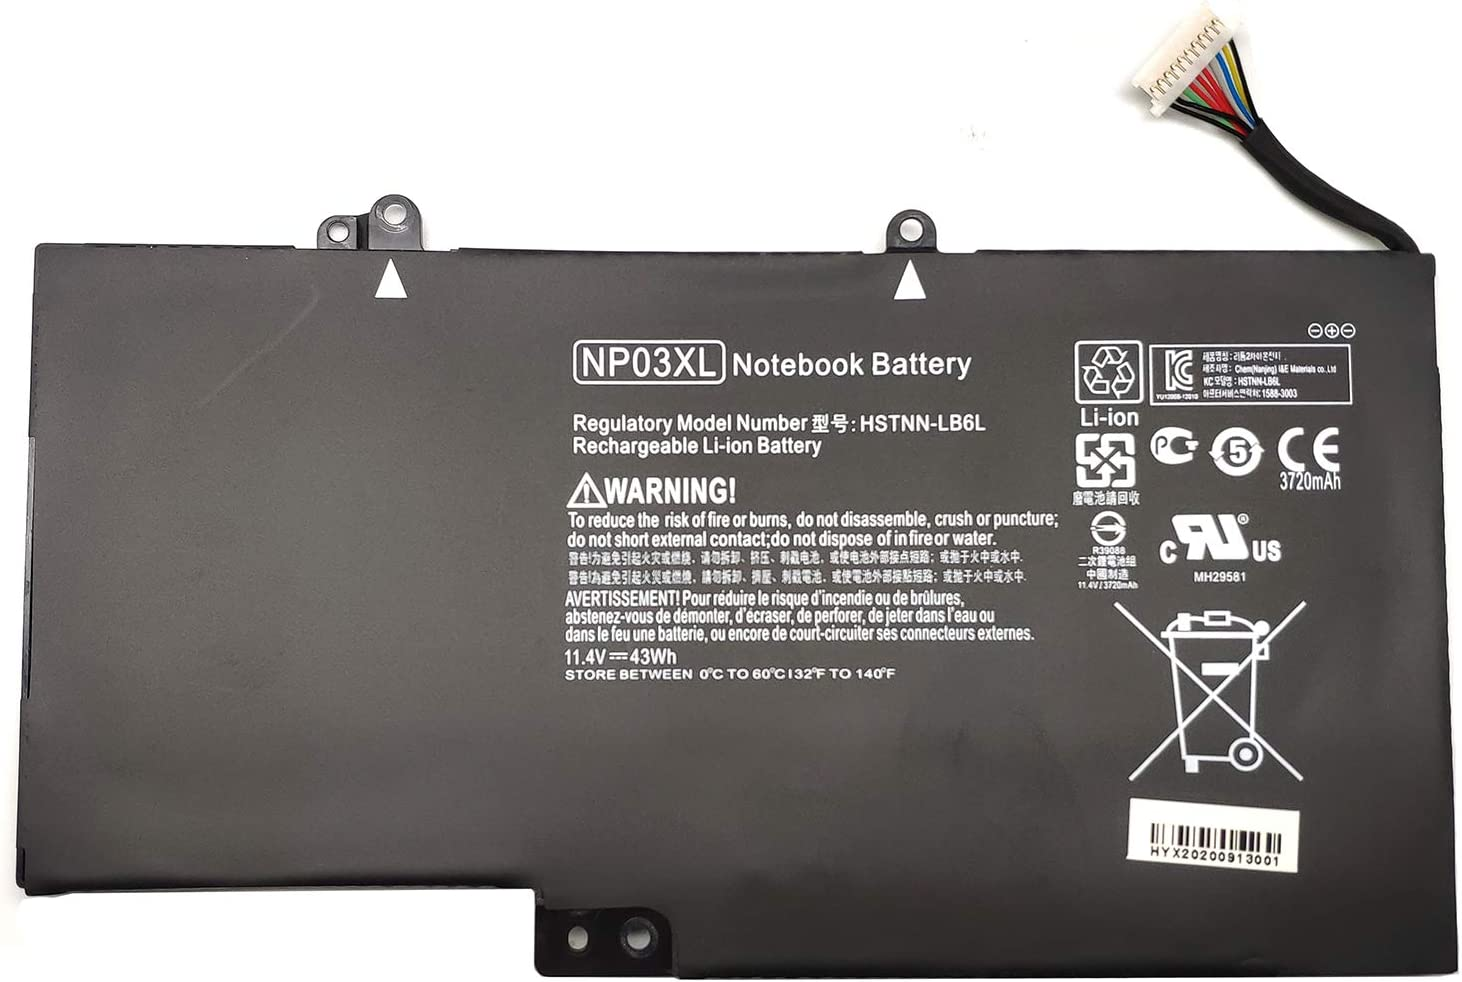 EndlessBattery NP03XL Replacement Laptop Battery with Challenge the lowest price Compatible Many popular brands